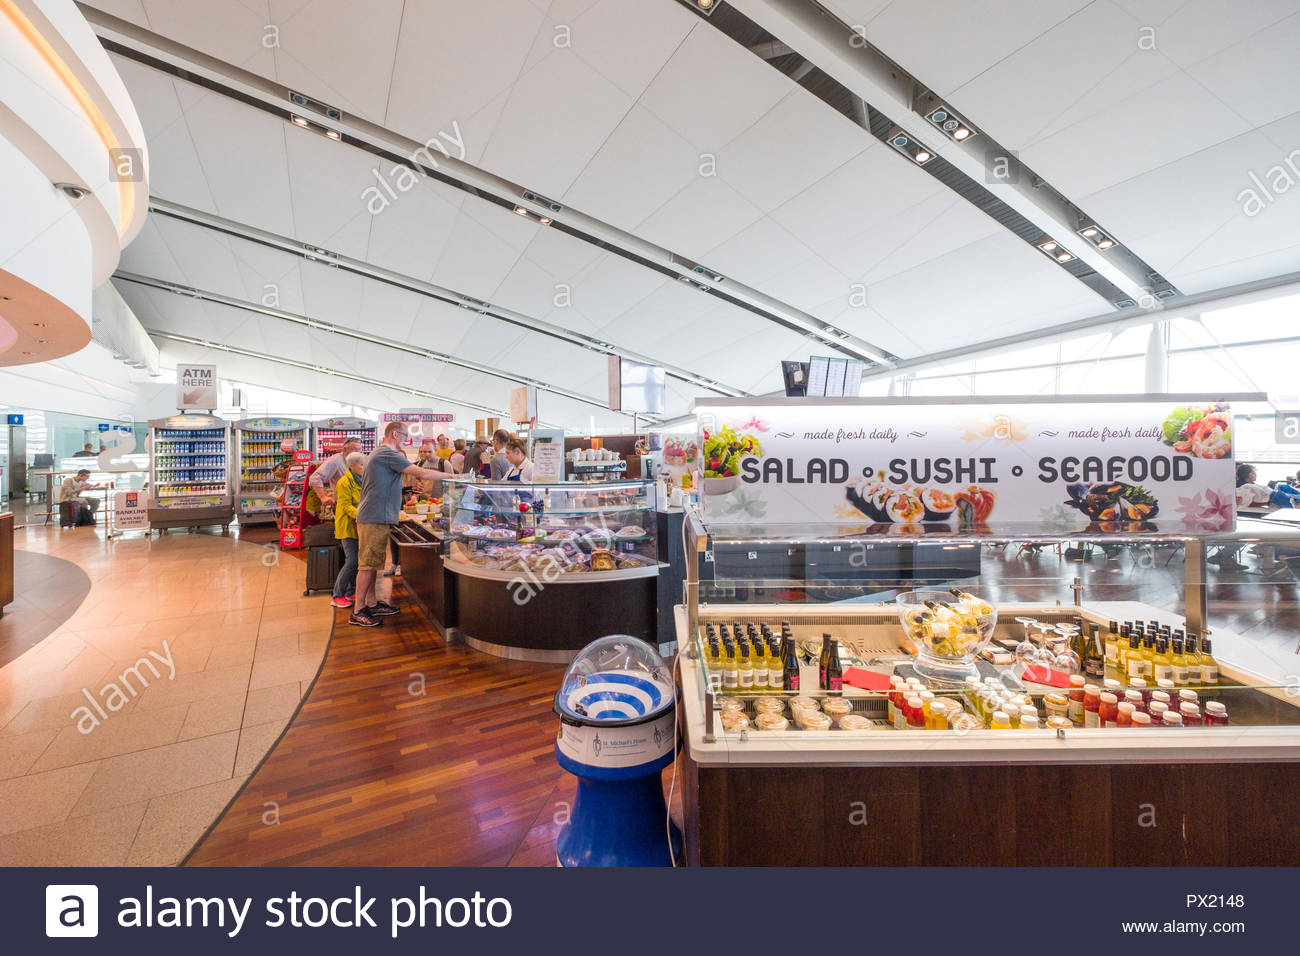 Refrigerated display cases with cold drinks and food items for sale at the food court in Terminal 2, Dublin Airport, Collinstown, County Dublin, Leins Stock Photo